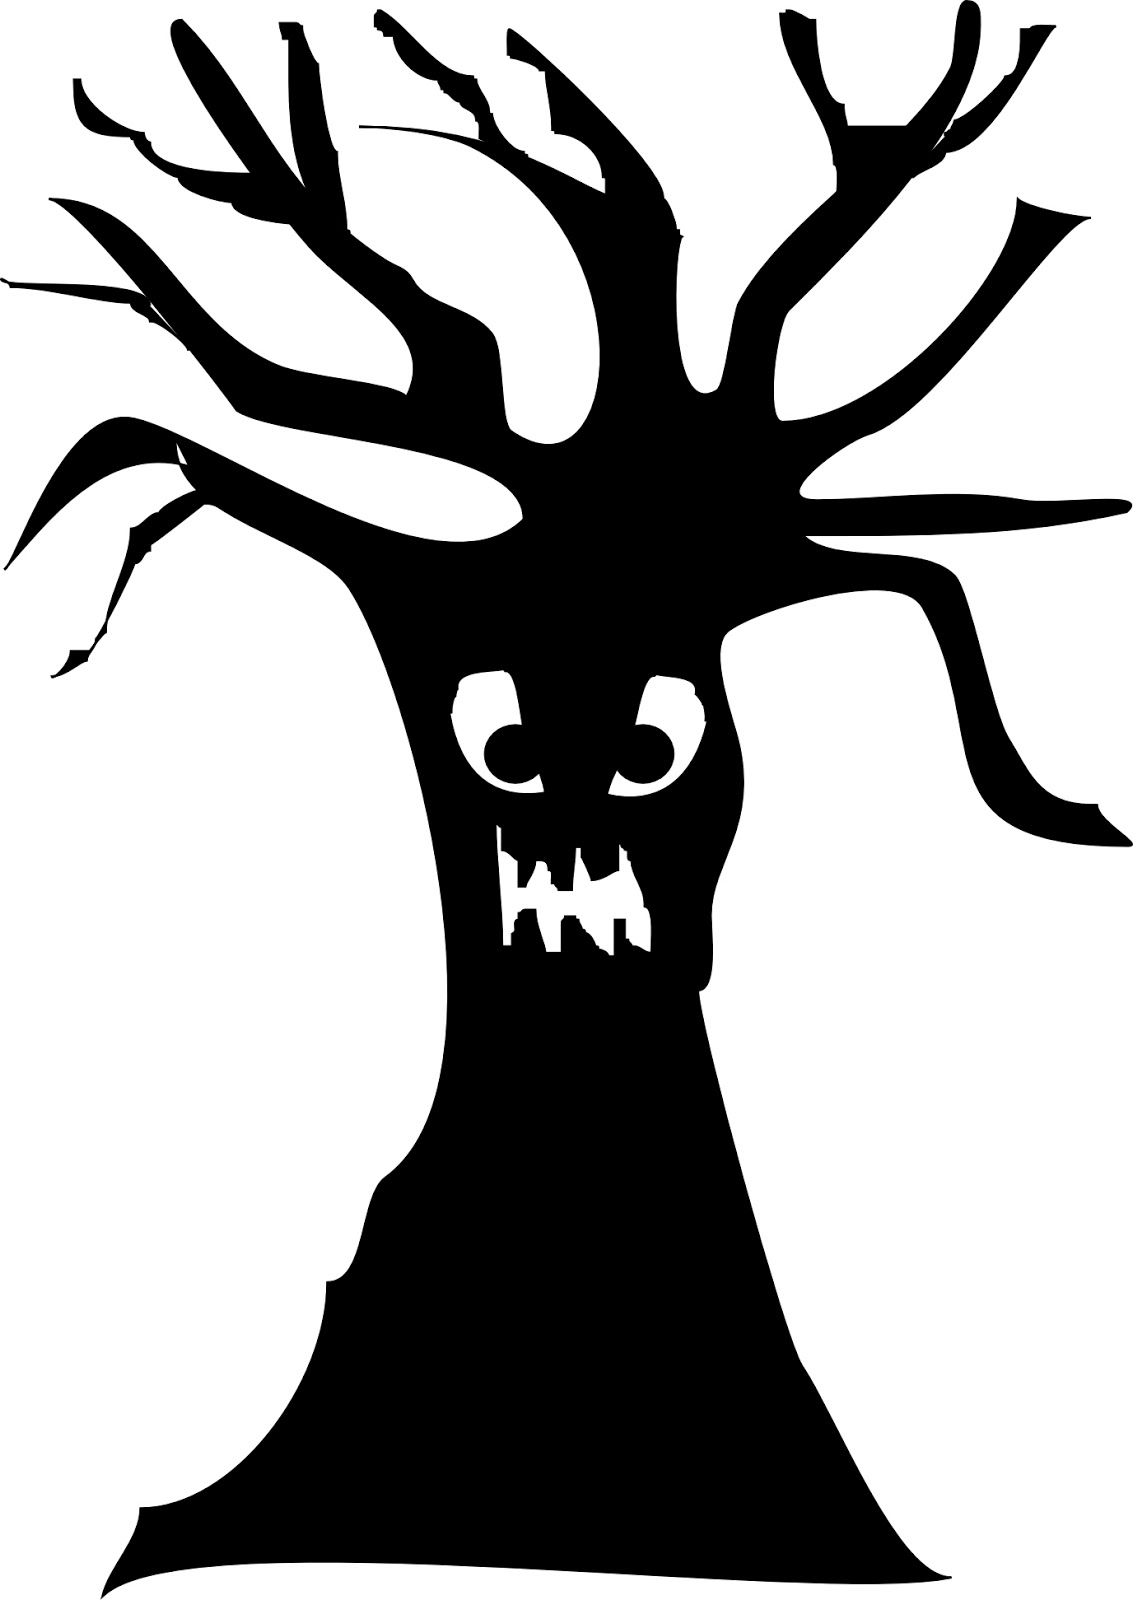 Horror clipart spooky tree Spooky Halloween Images Halloween typat